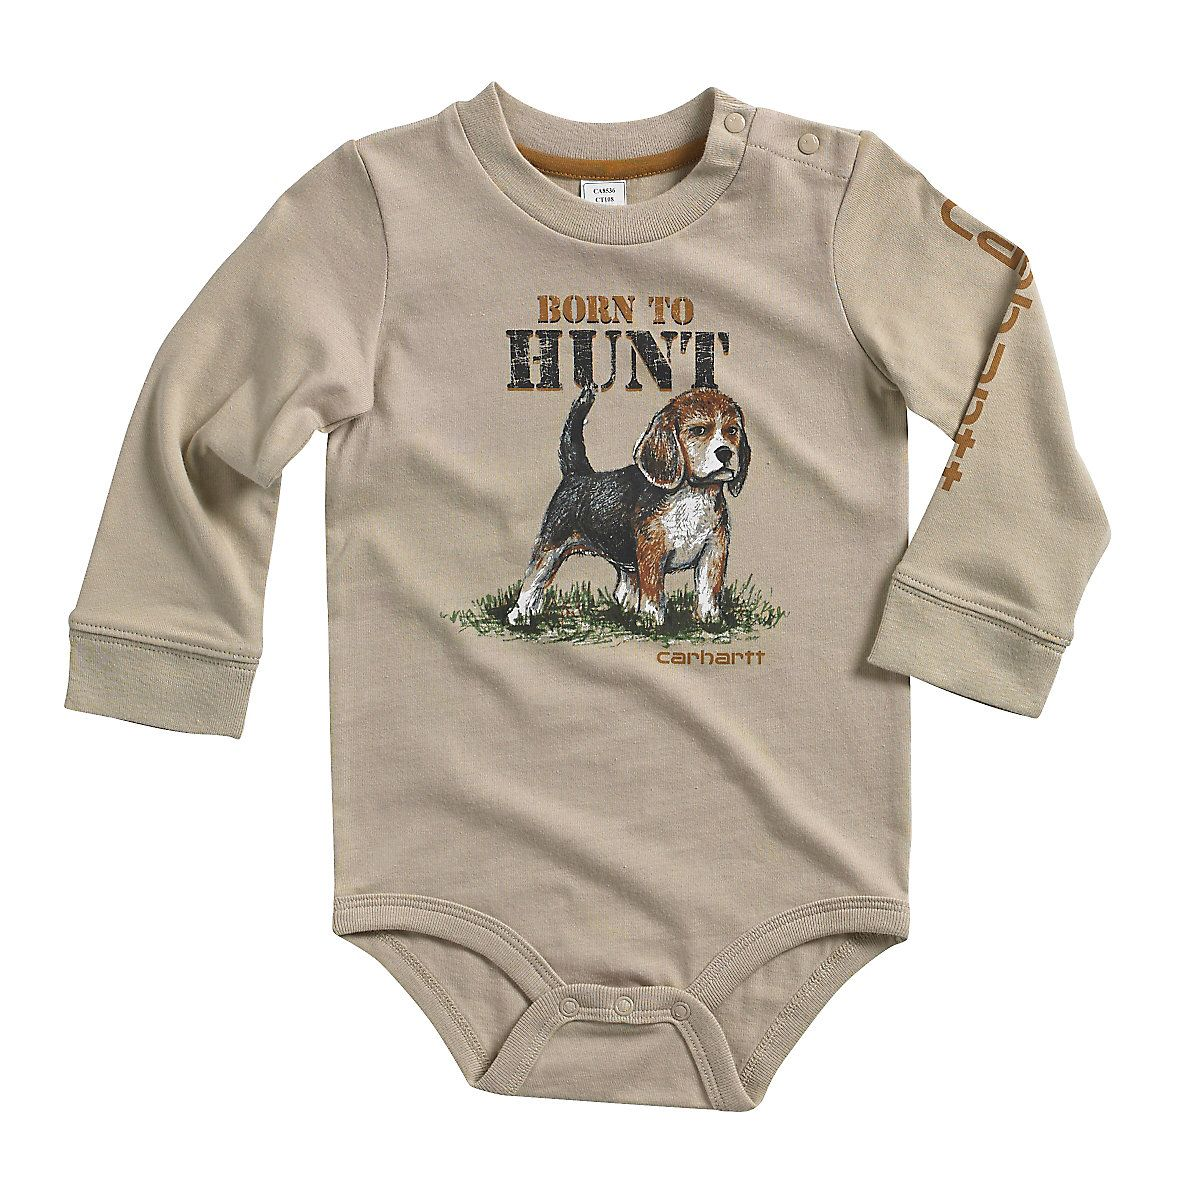 41c45bf27 Shop the Infant/Toddler Born to Hunt Bodyshirt for Boys' at Carhartt.com  for Boys' Shirts that works as hard as you do.